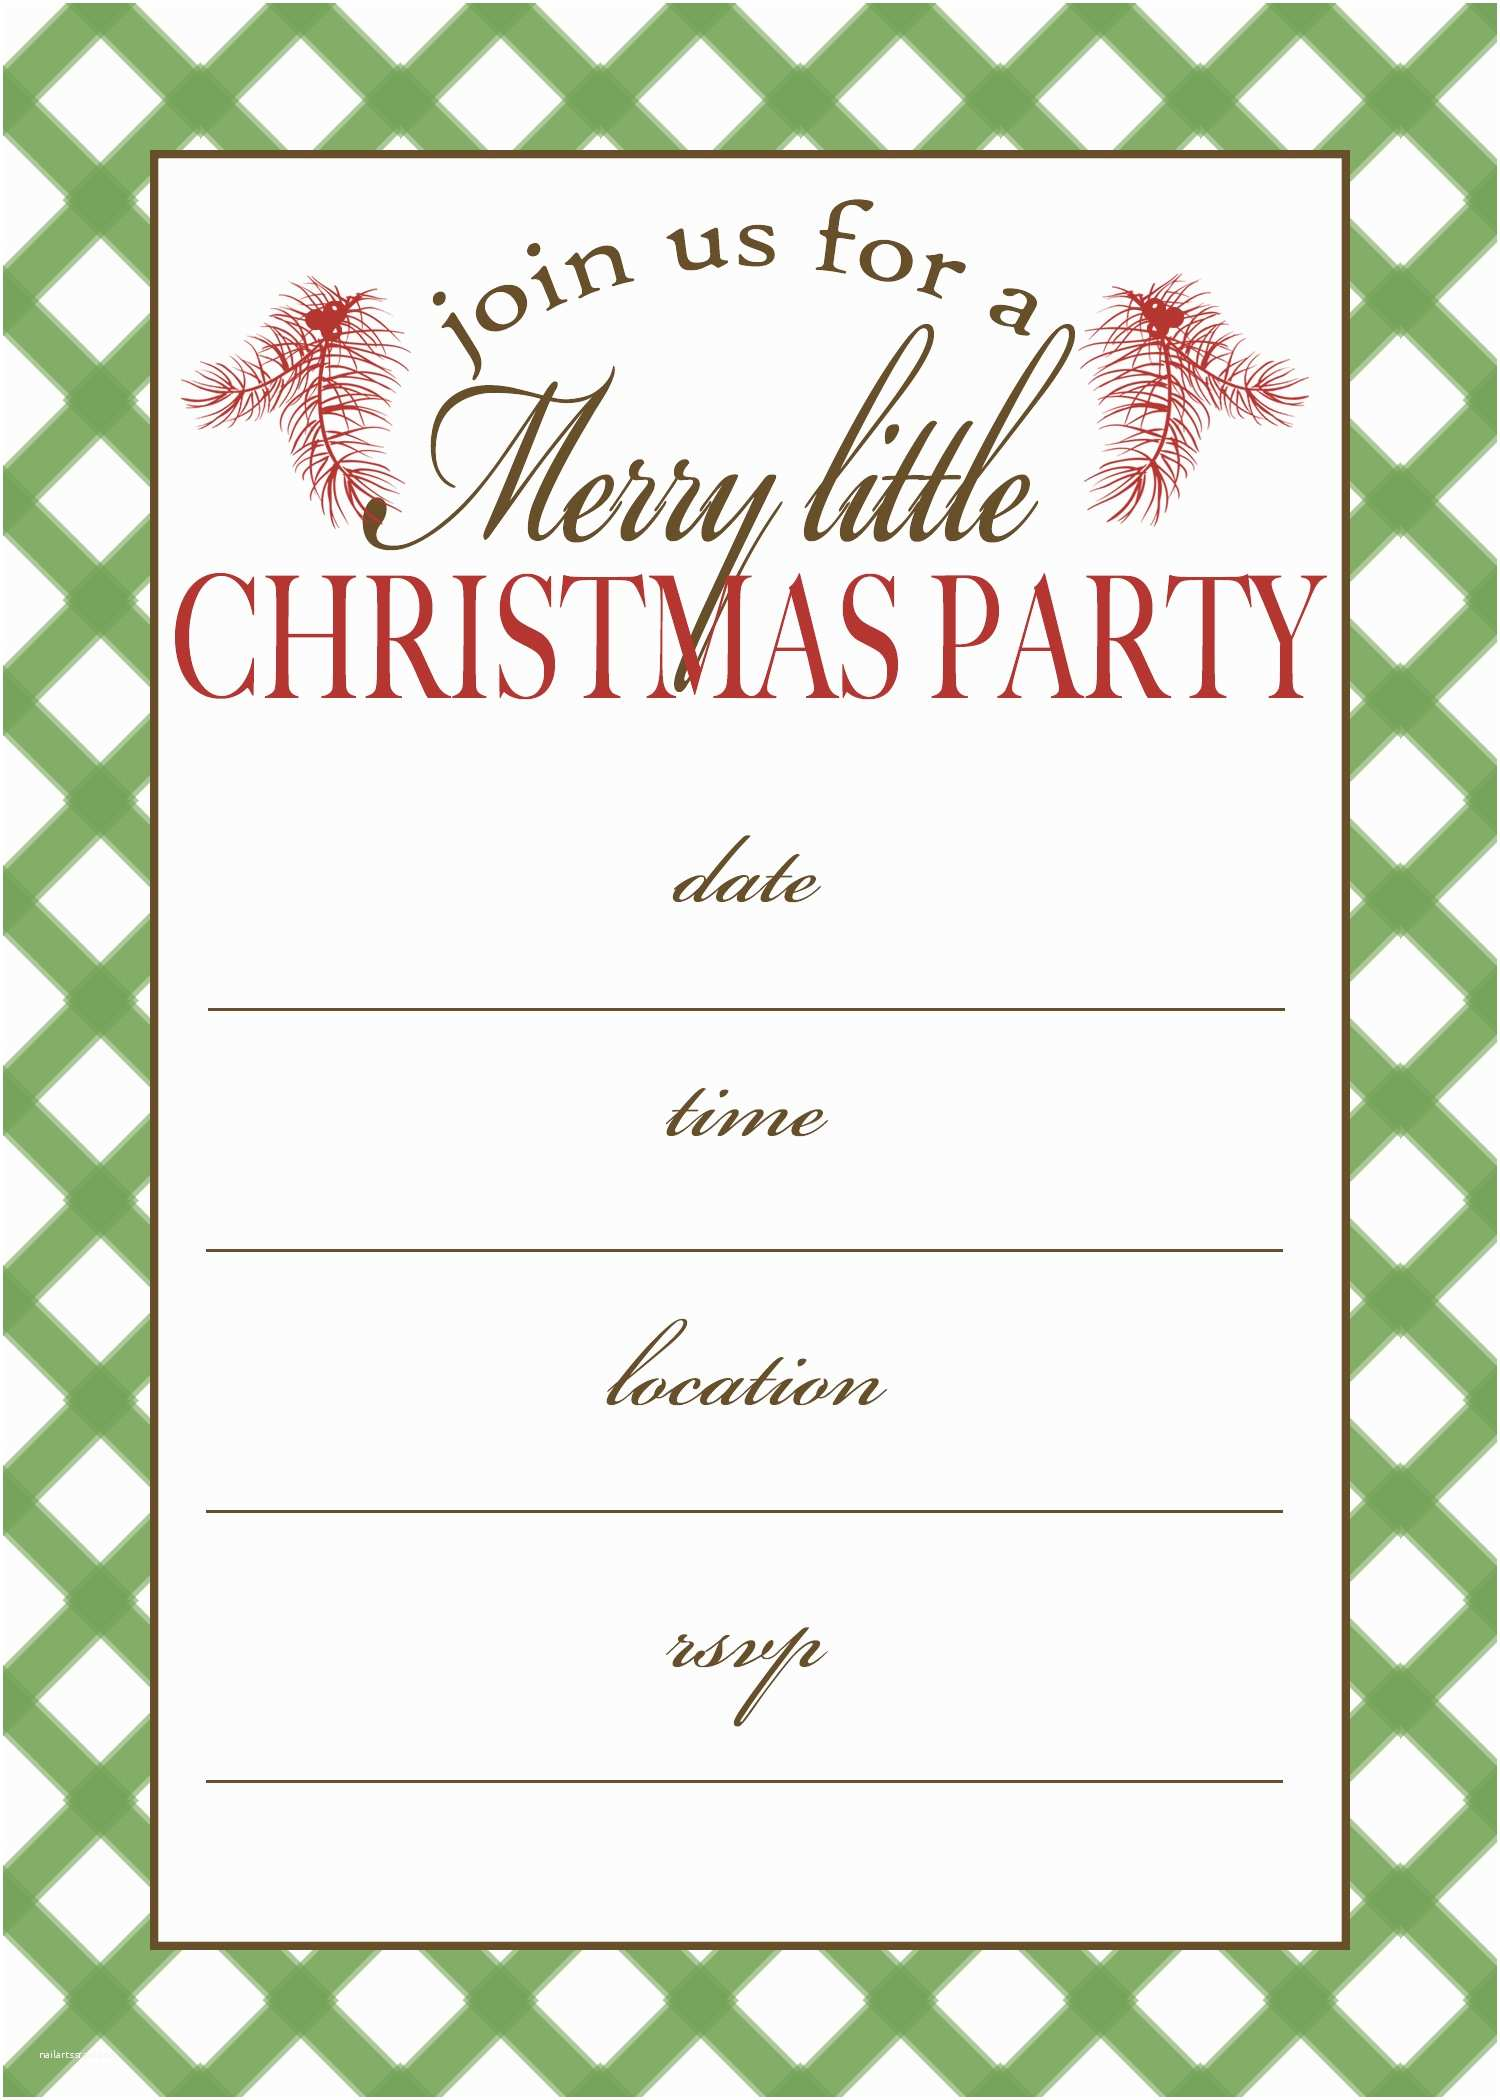 Free Christmas Party Invitation Templates 7 Best Of Free Printable Christmas Invitation